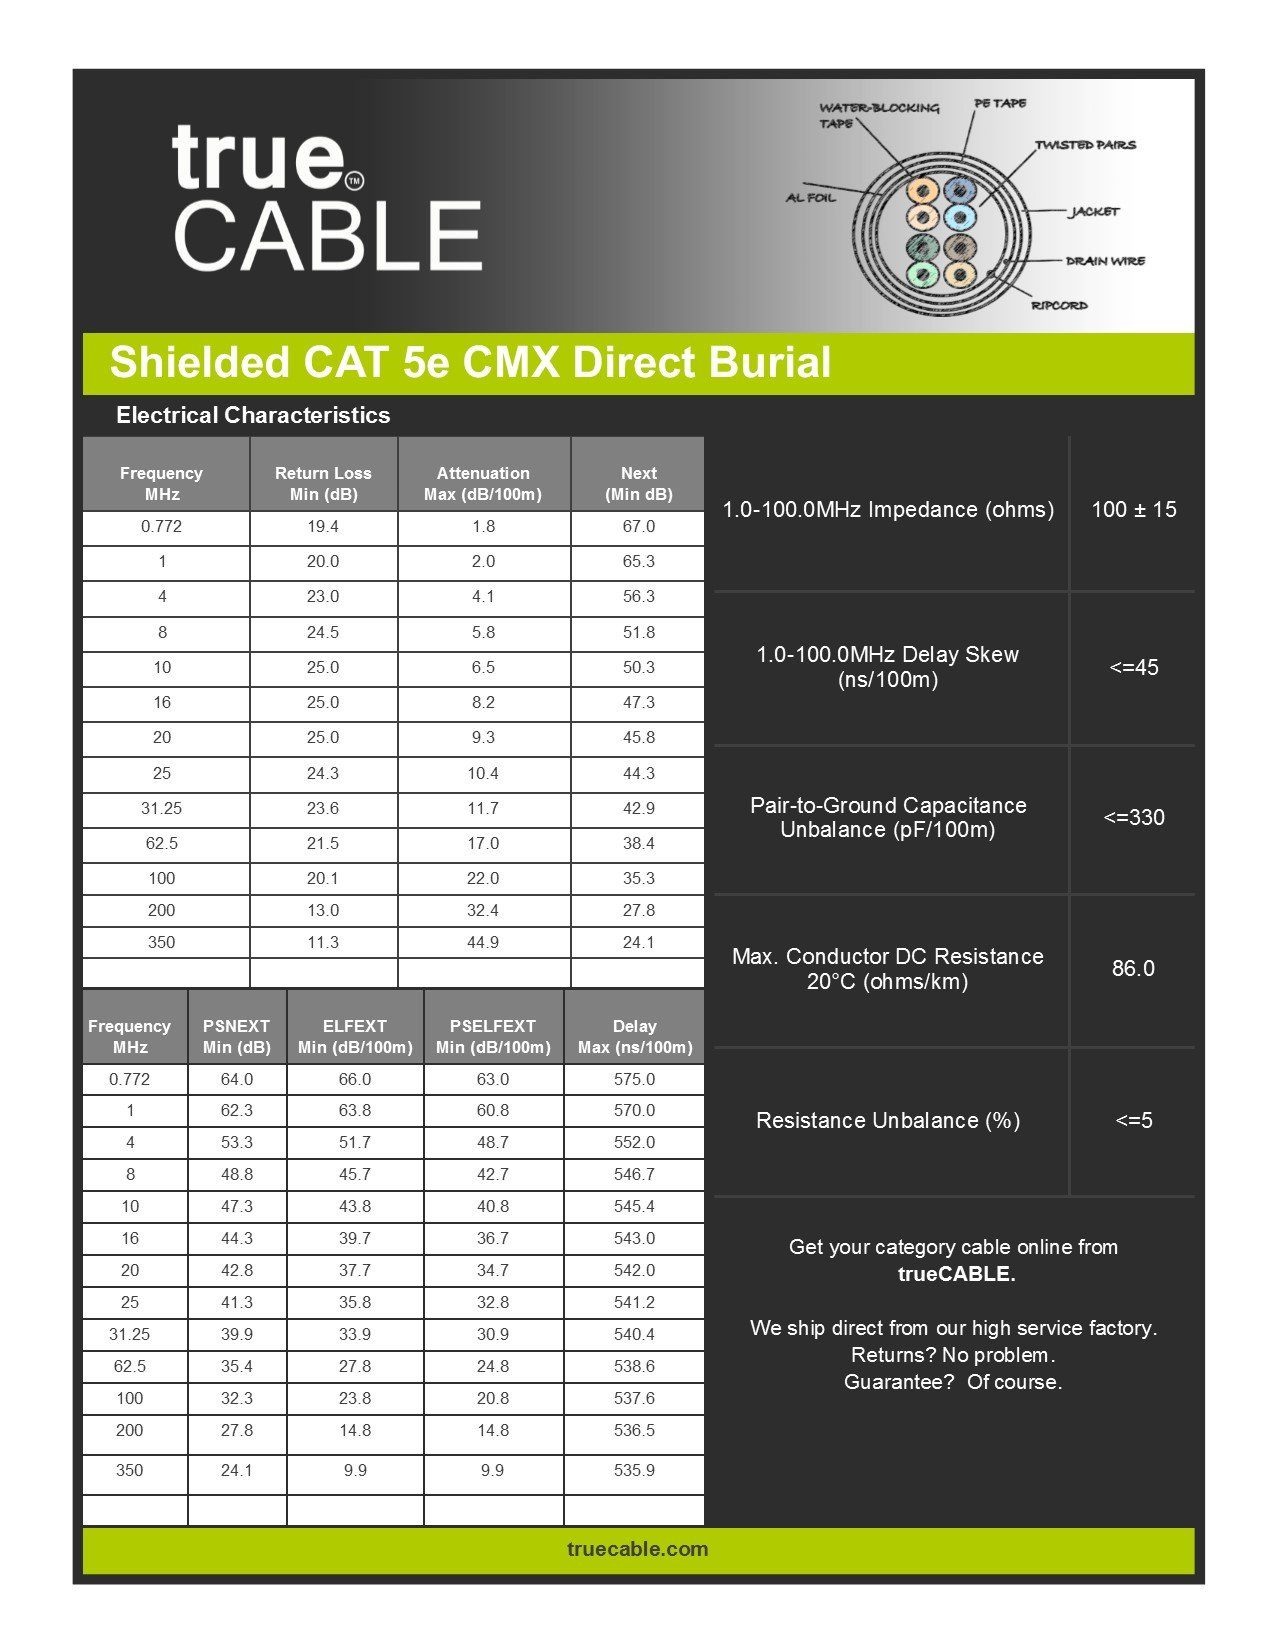 Cat5e Outdoor, Shielded - FTP, 1000ft, Waterproof Direct Burial Rated CMX, Solid Bare Copper Bulk Ethernet Cable, 350MHz, ETL Listed, Black, trueCABLE by trueCABLE (Image #6)